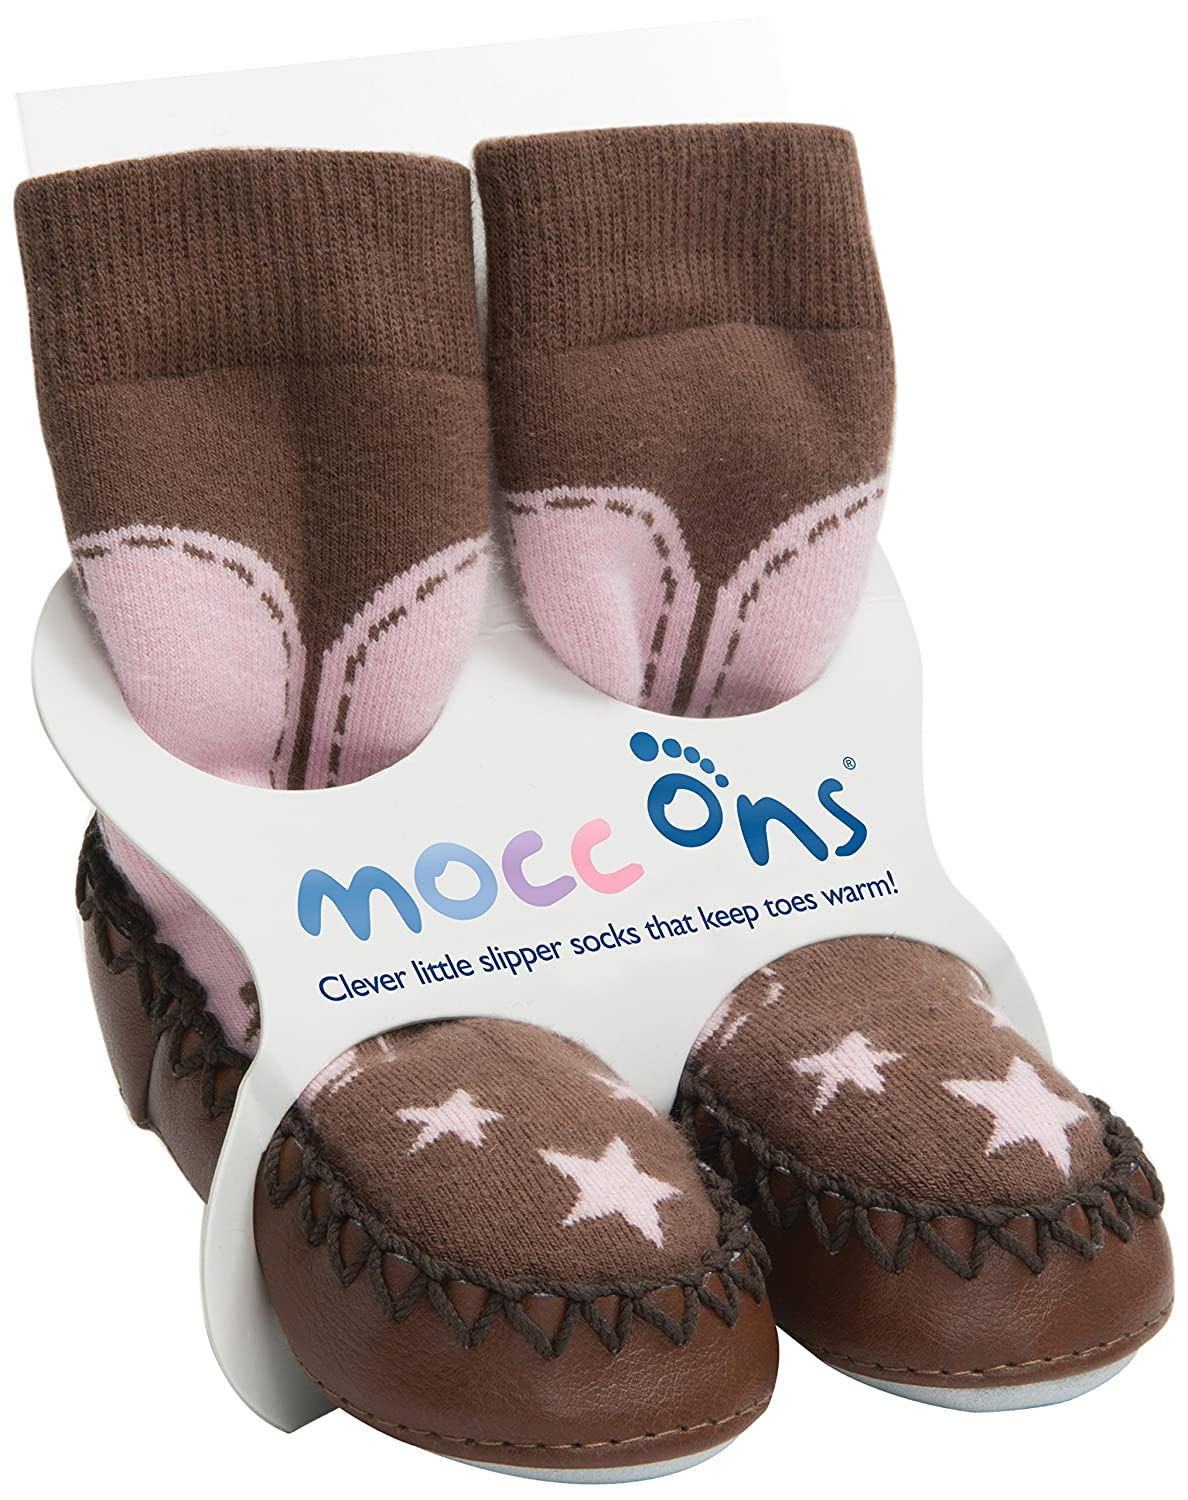 Mocc Ons Moccasin Style Slipper Socks - 2-3 years, Pink Spots MOCCONPS2-3